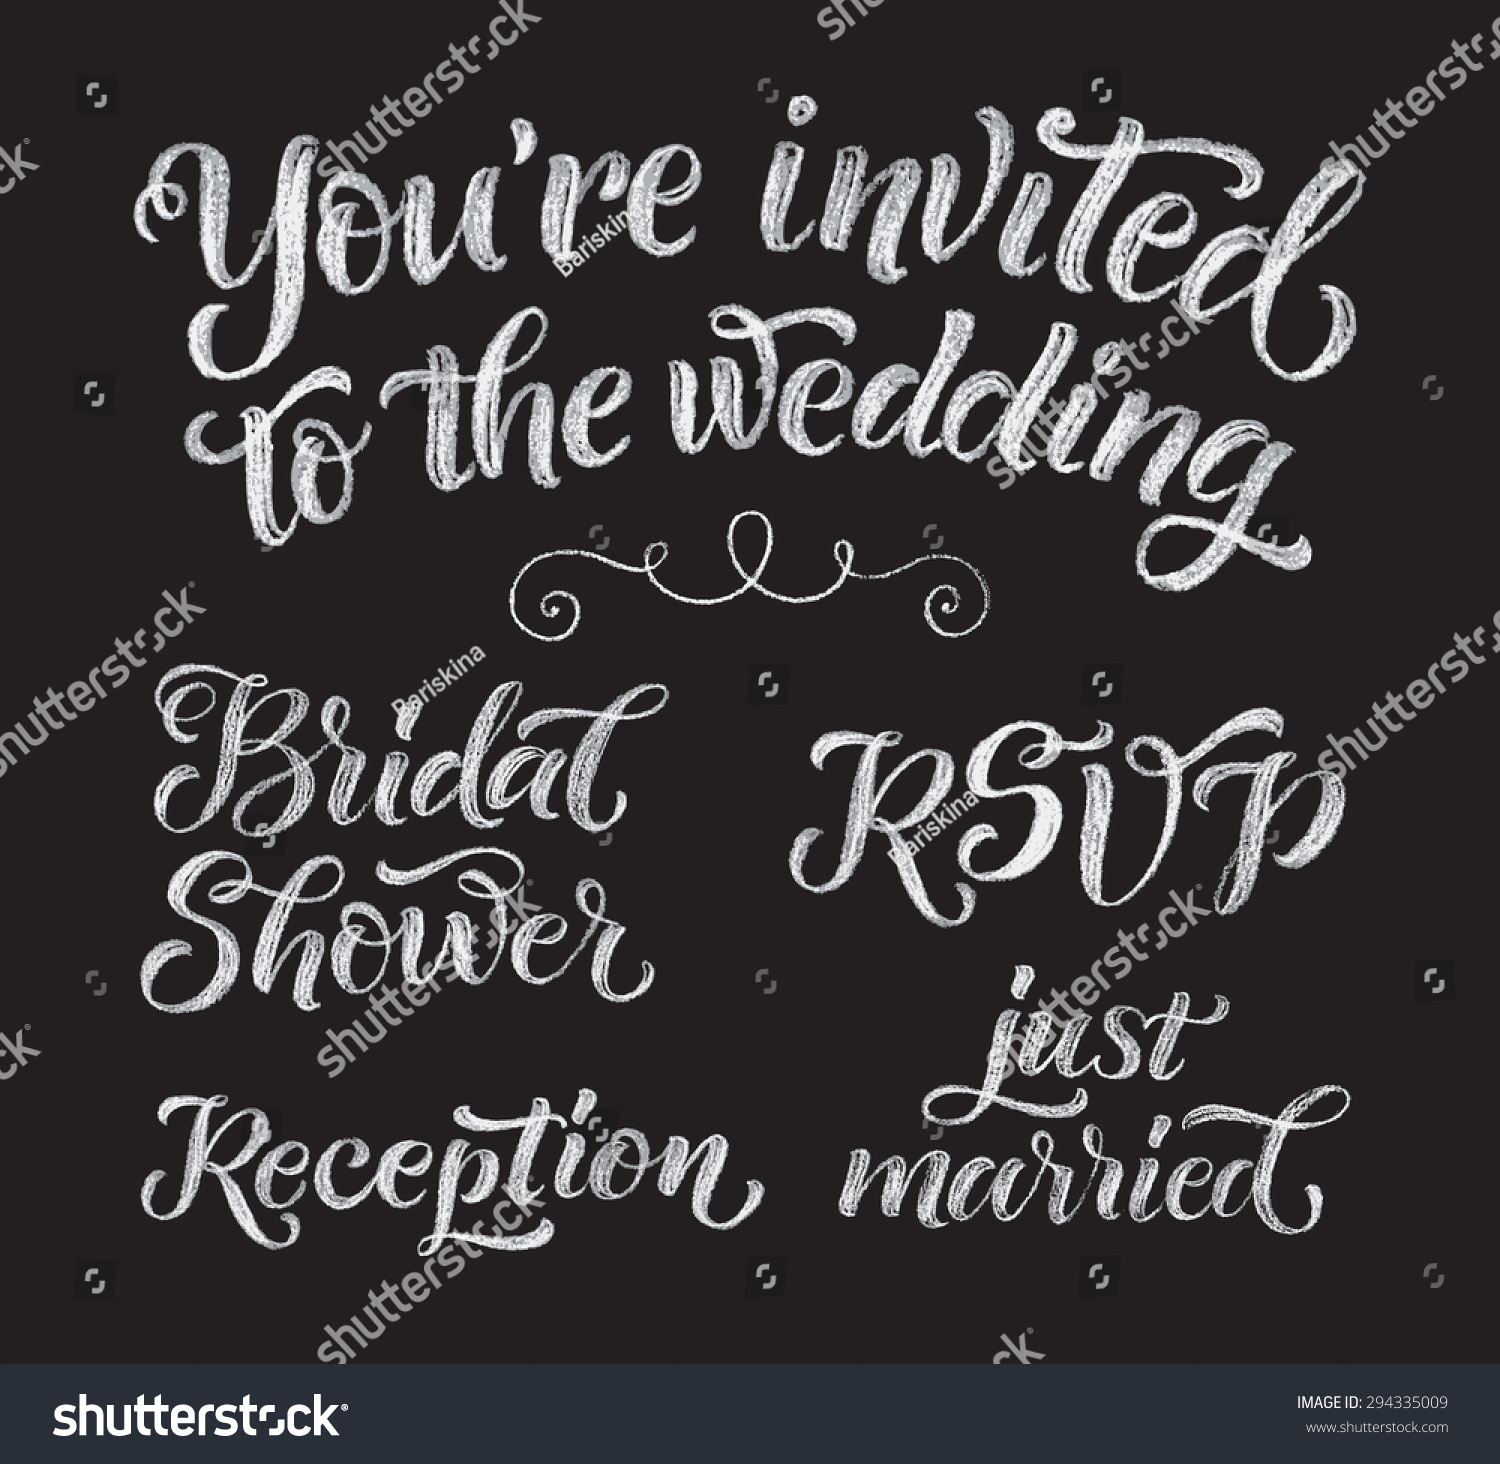 Vector Wedding Design Template Ornate Elements Stock Vector 294335009 - Shutterstock